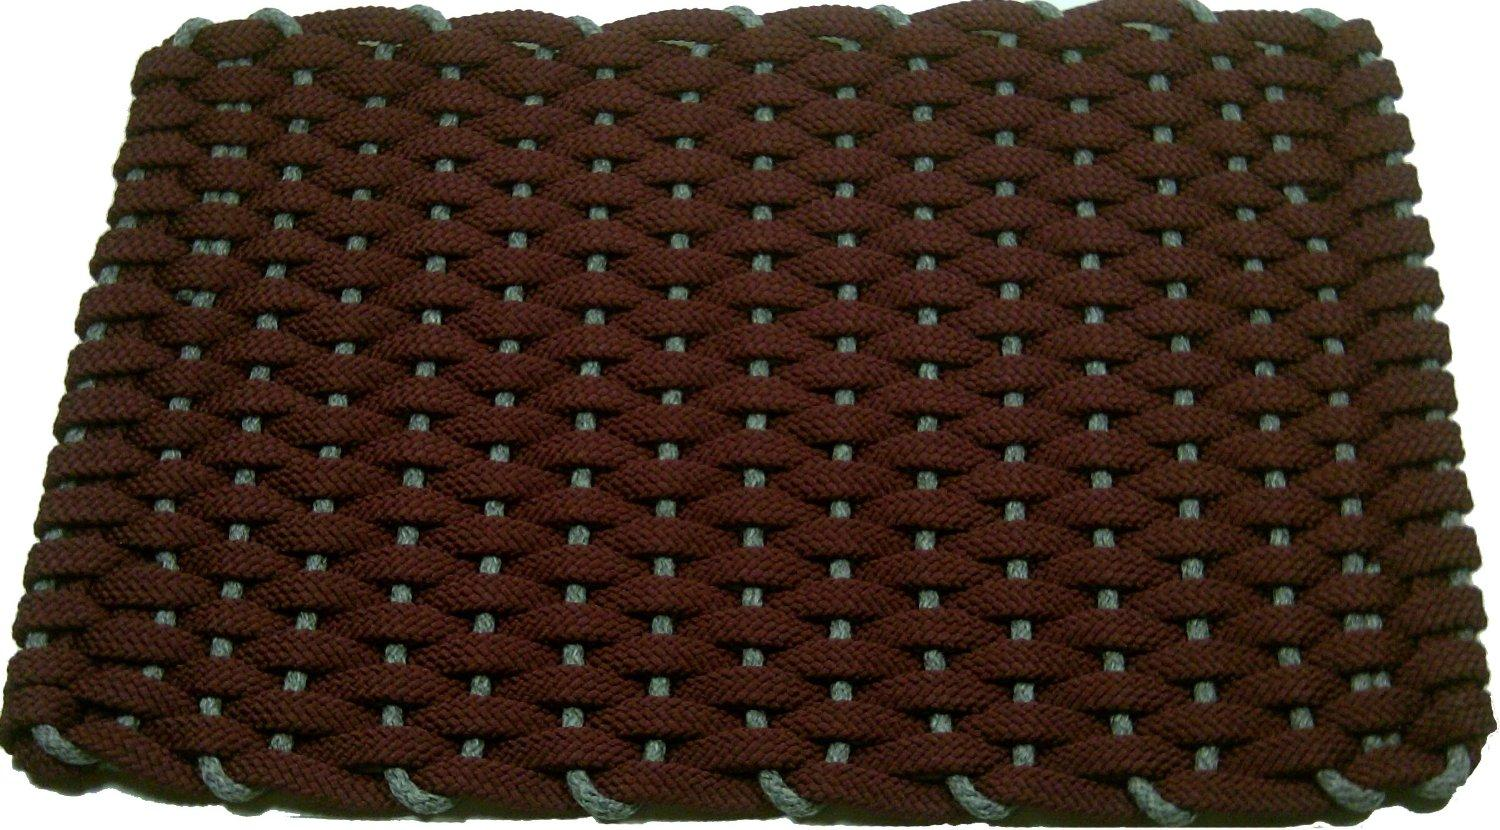 Dog Door Mats Outdoor Amazon Rockport Rope Doormats 287 Indoor And Outdoor